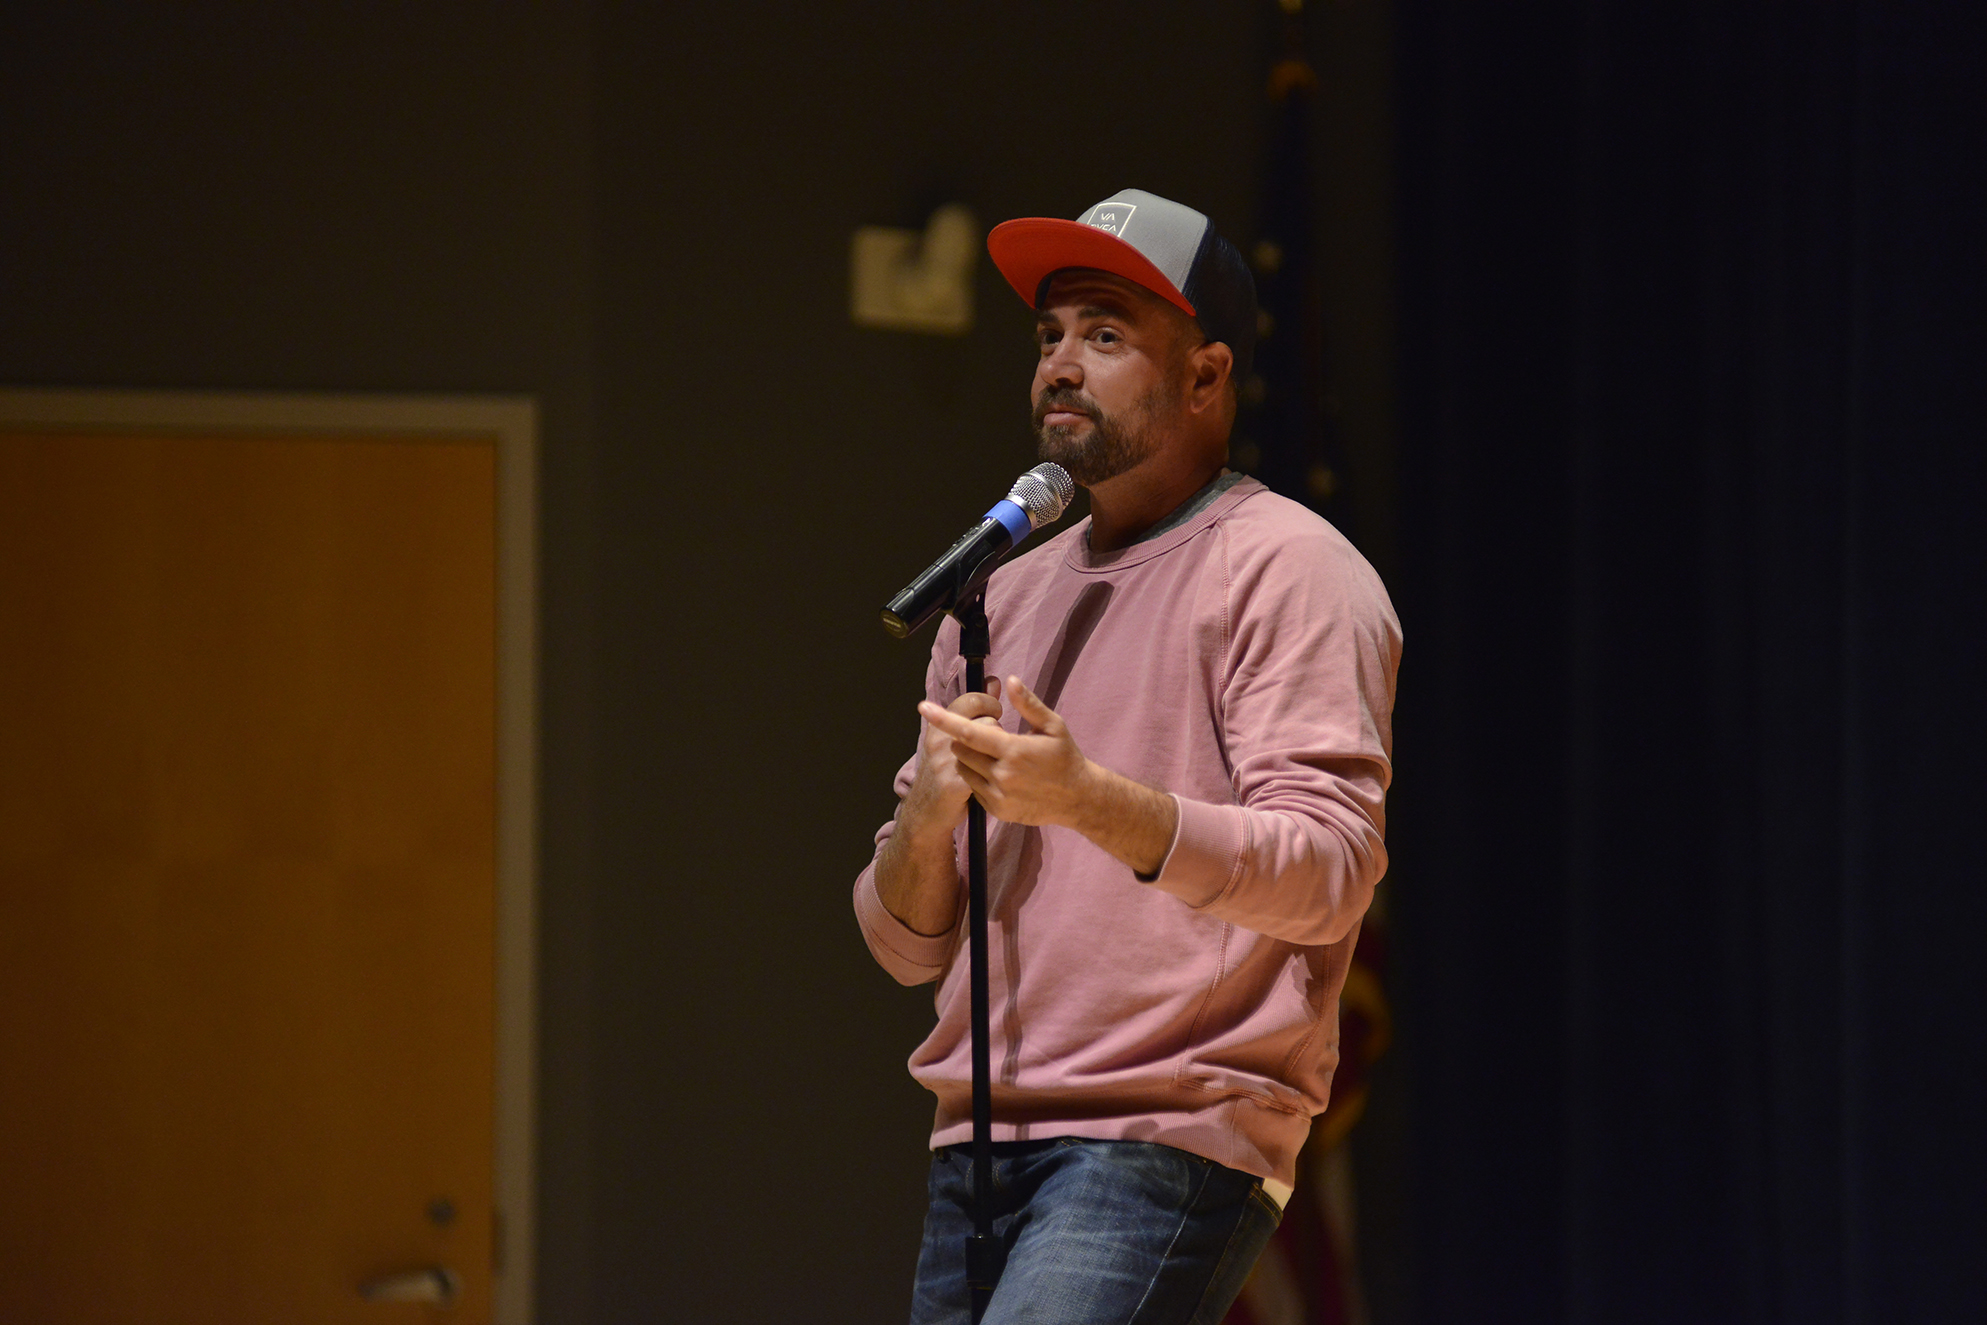 Comedian Ian Harvie is pictured during his performance at the Student Union Theater on Thursday, Oct. 8, 2015. (Jason Jiang/The Daily Campus)